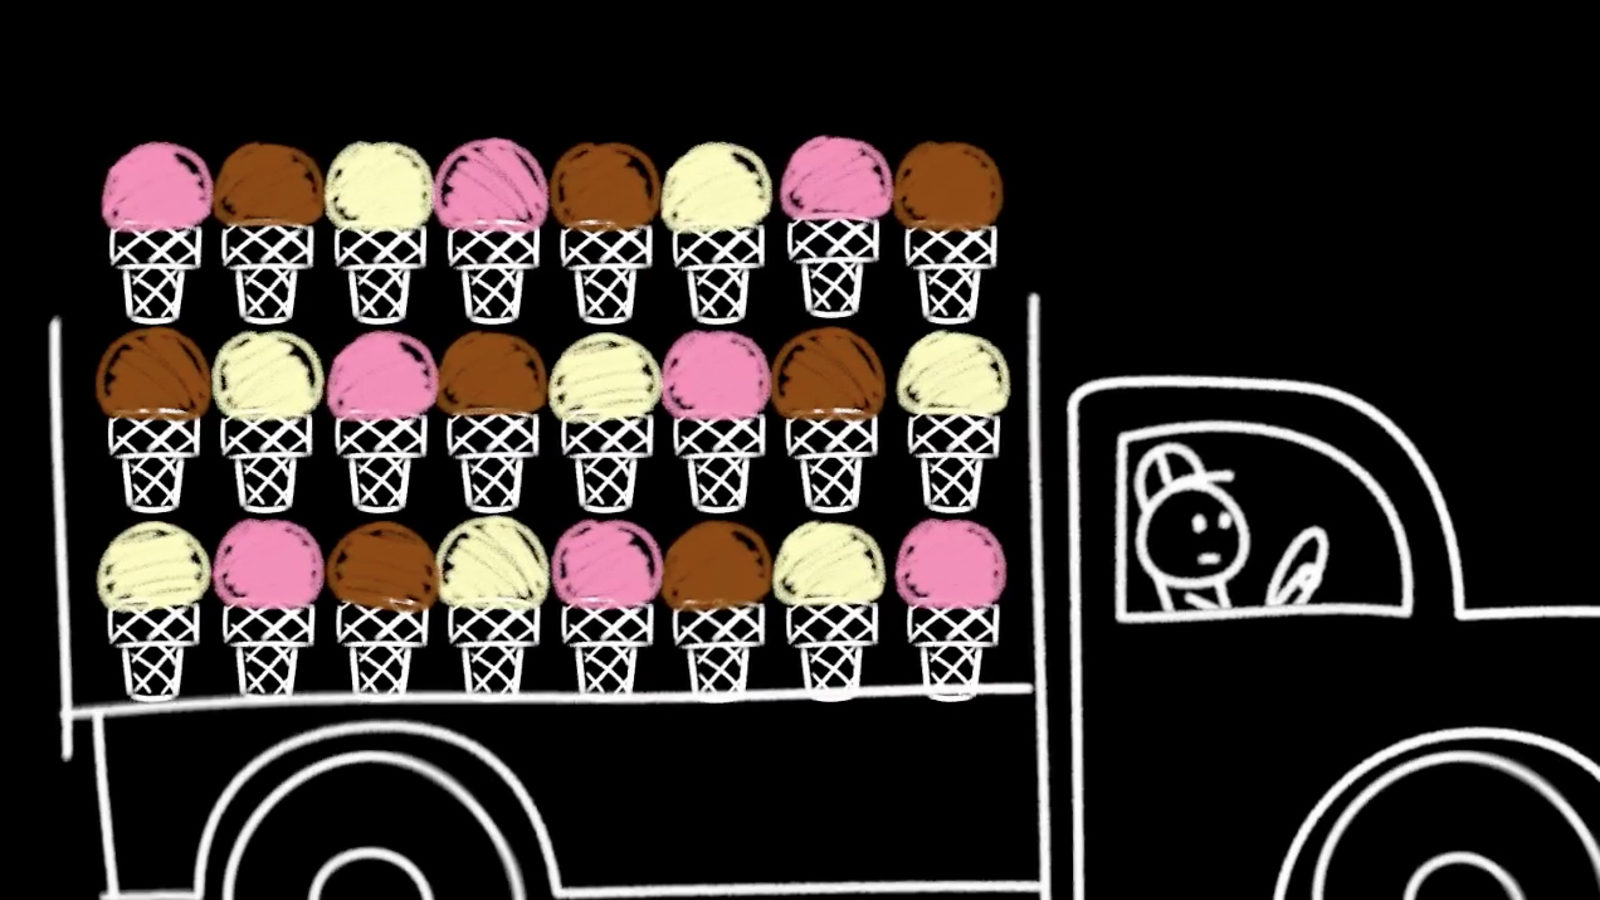 Illustration of man driving truck with ice cream cones in back